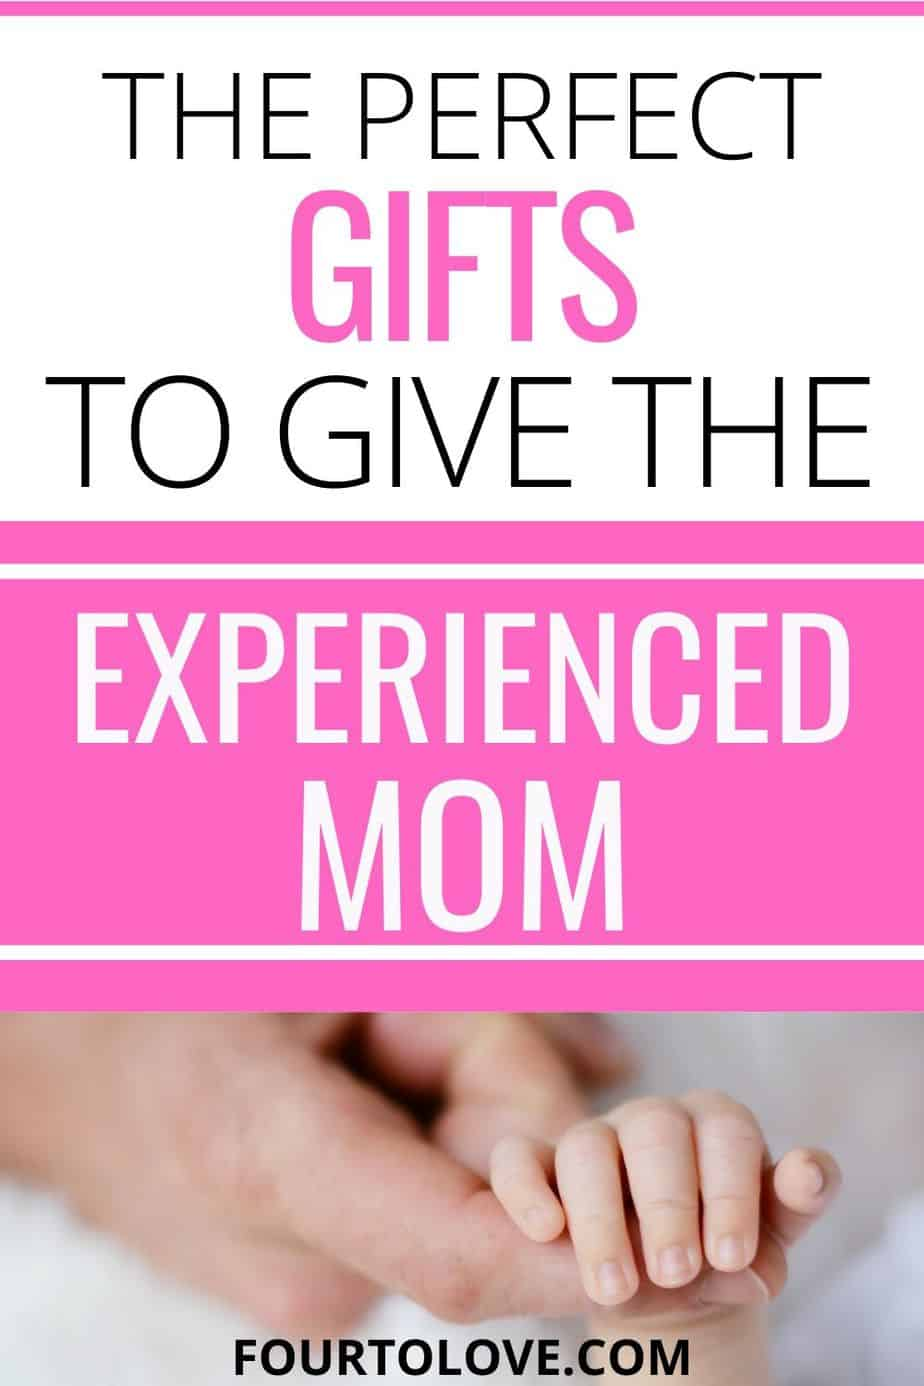 The Ultimate List Of Fourth Baby Gift Ideas Experienced Moms Will Love Four To Love